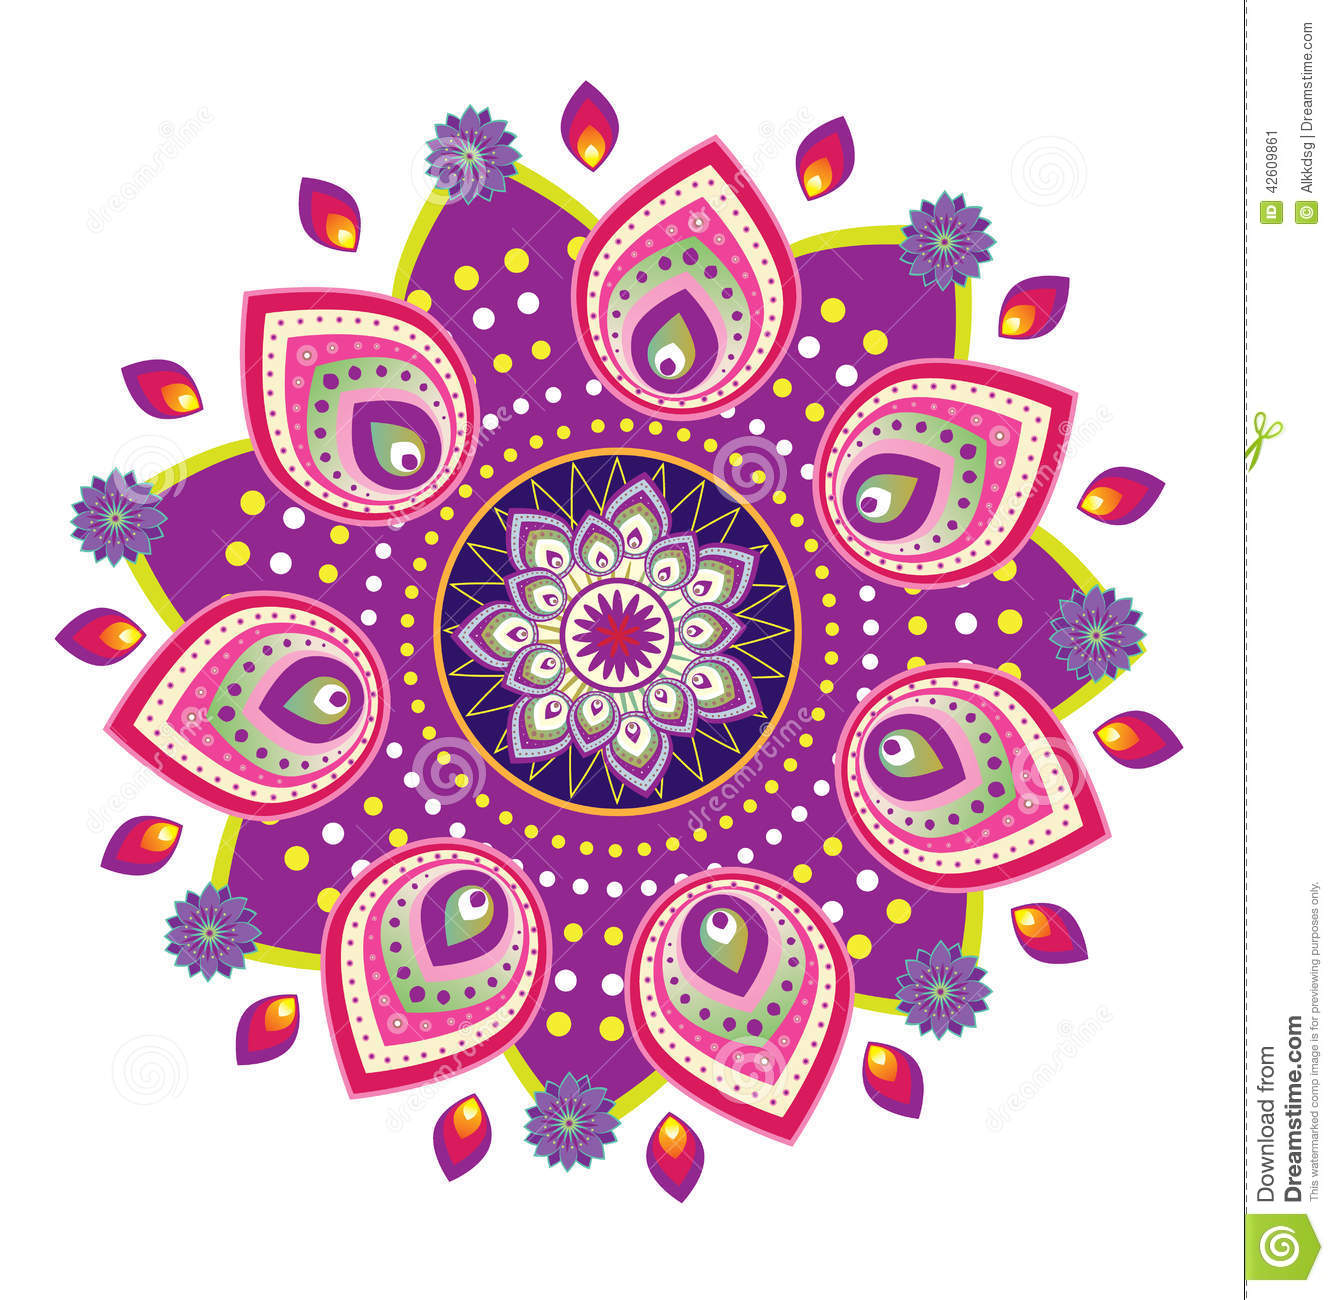 Flower pattern mandala stock vector. Illustration of ...